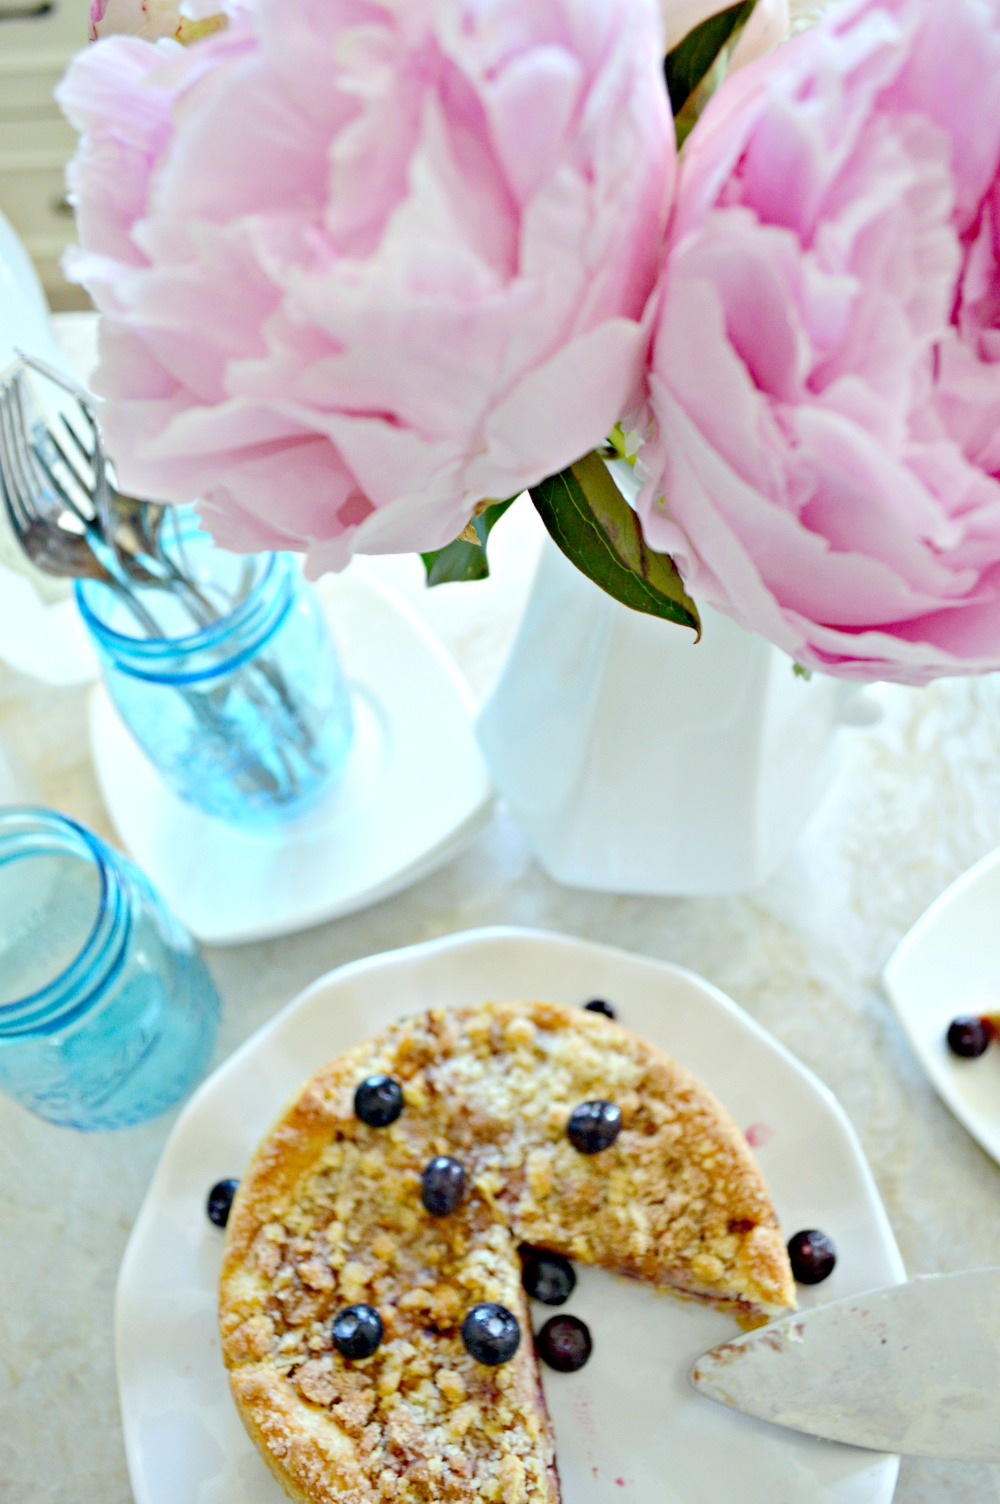 Summer Home Tour with amazing blueberry tarts and peonies